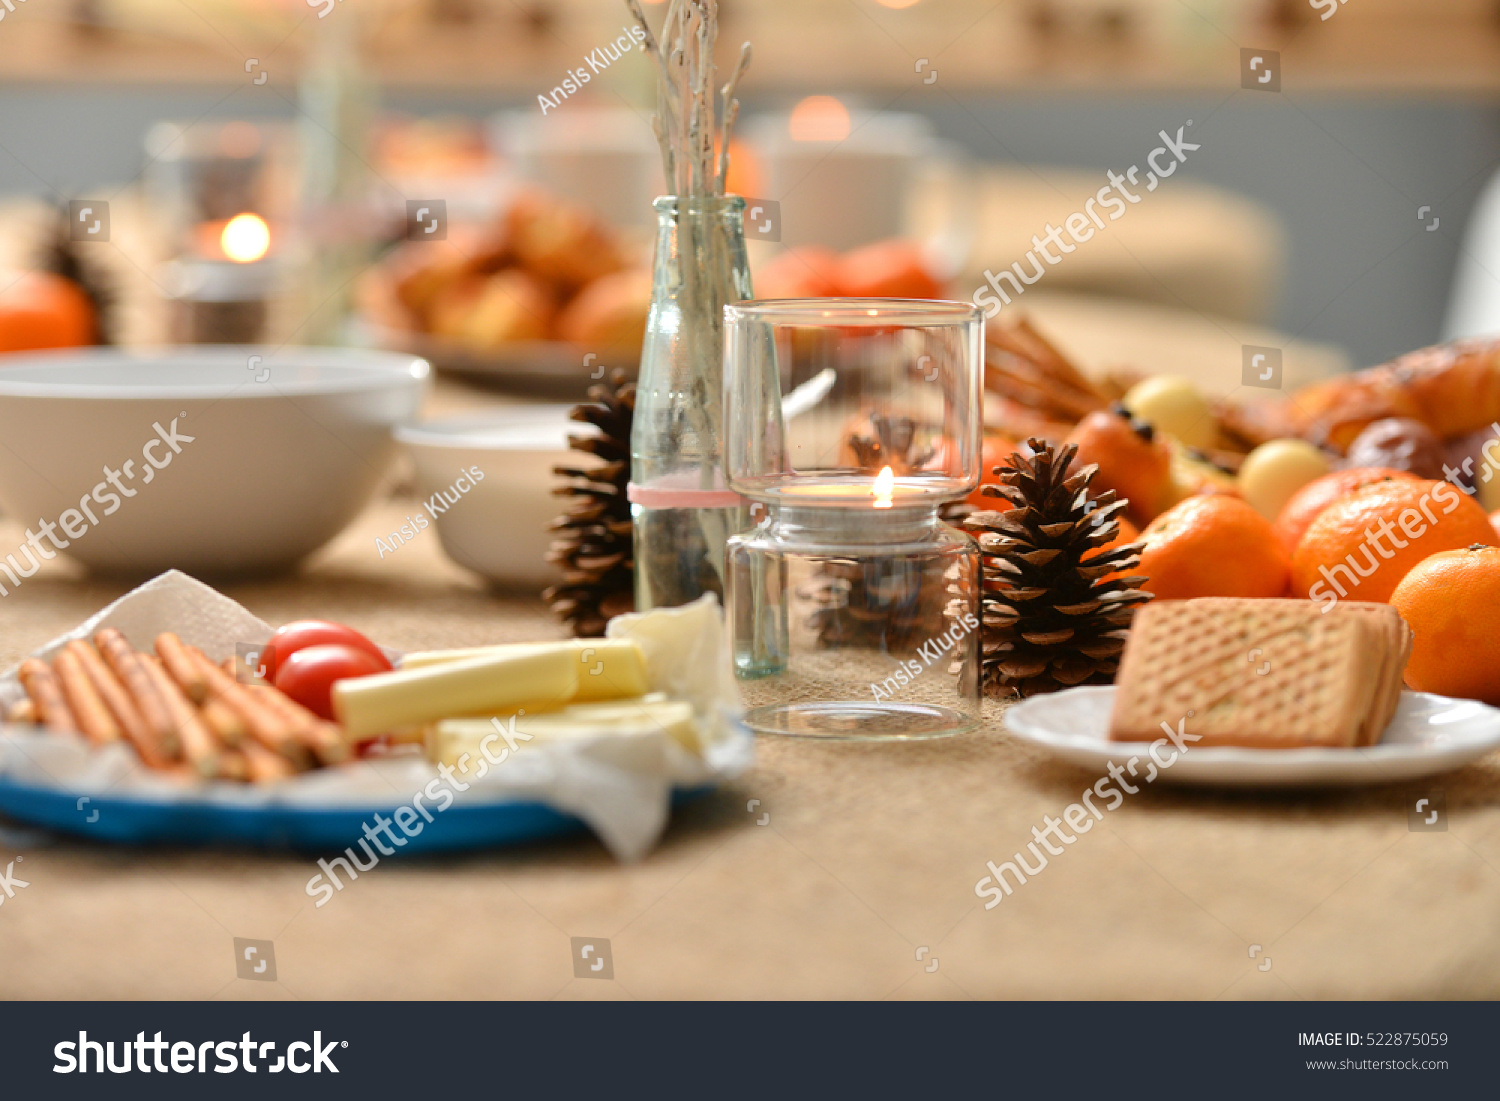 Christmas Decoration On Snack Table Stock Photo (Royalty Free ...